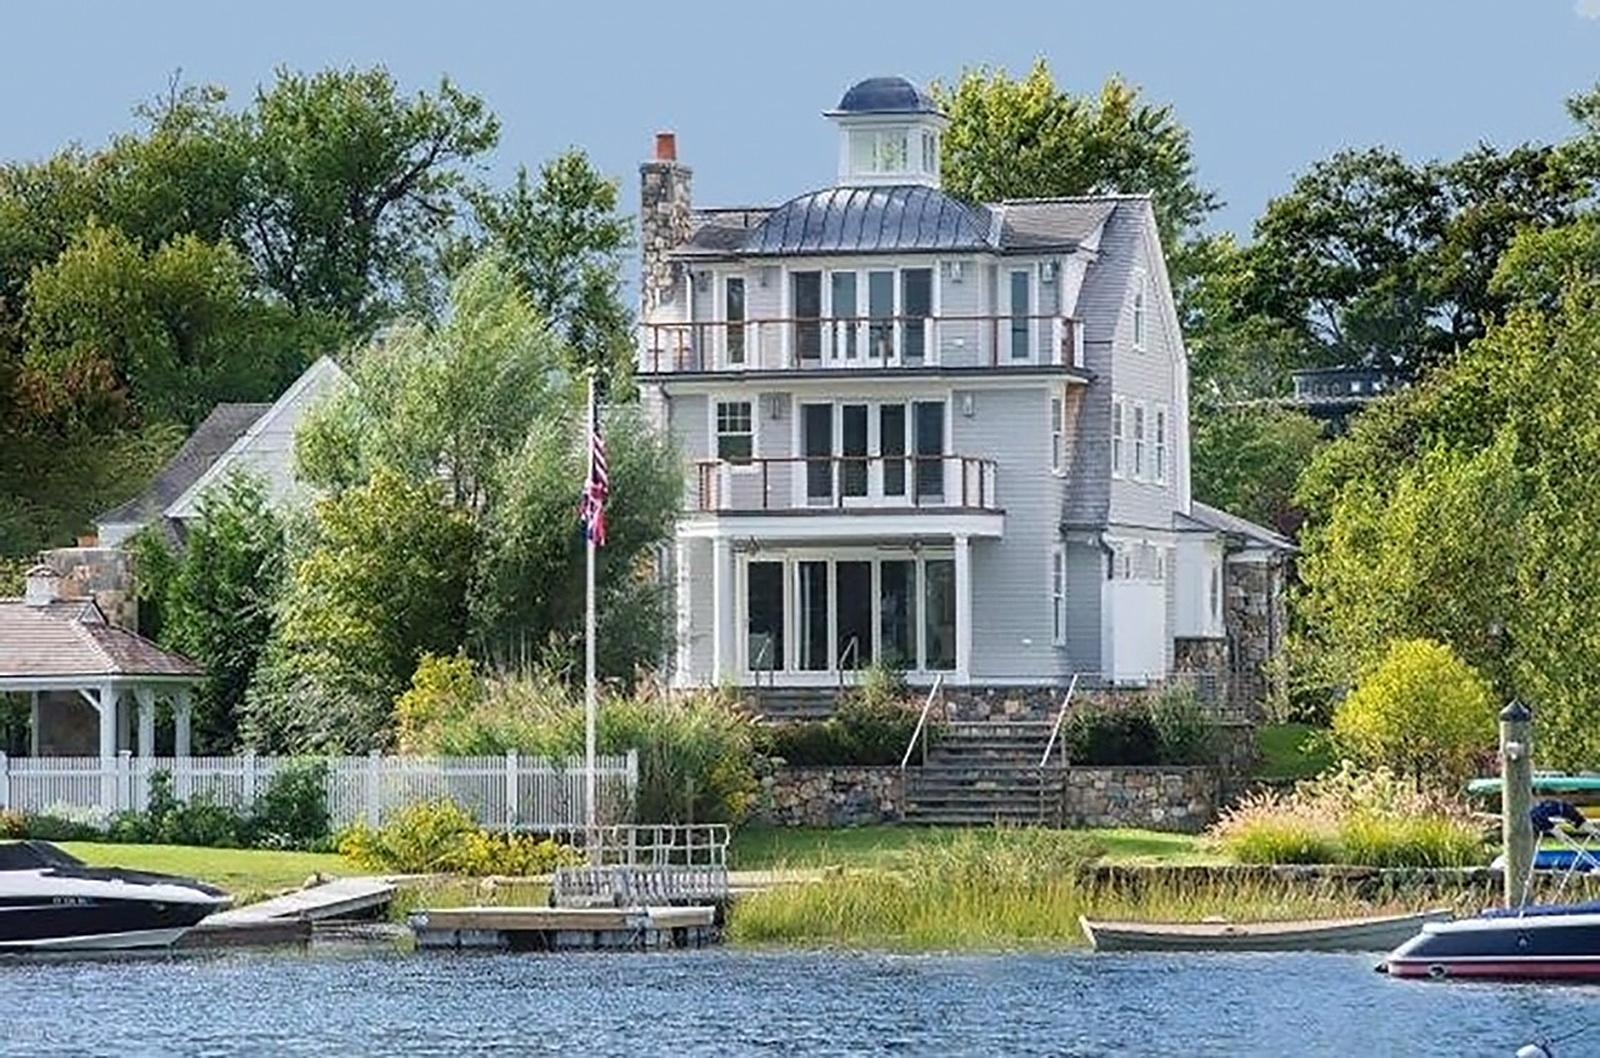 Waterfront home in Greenwich offers open-air living | Greenwich Time